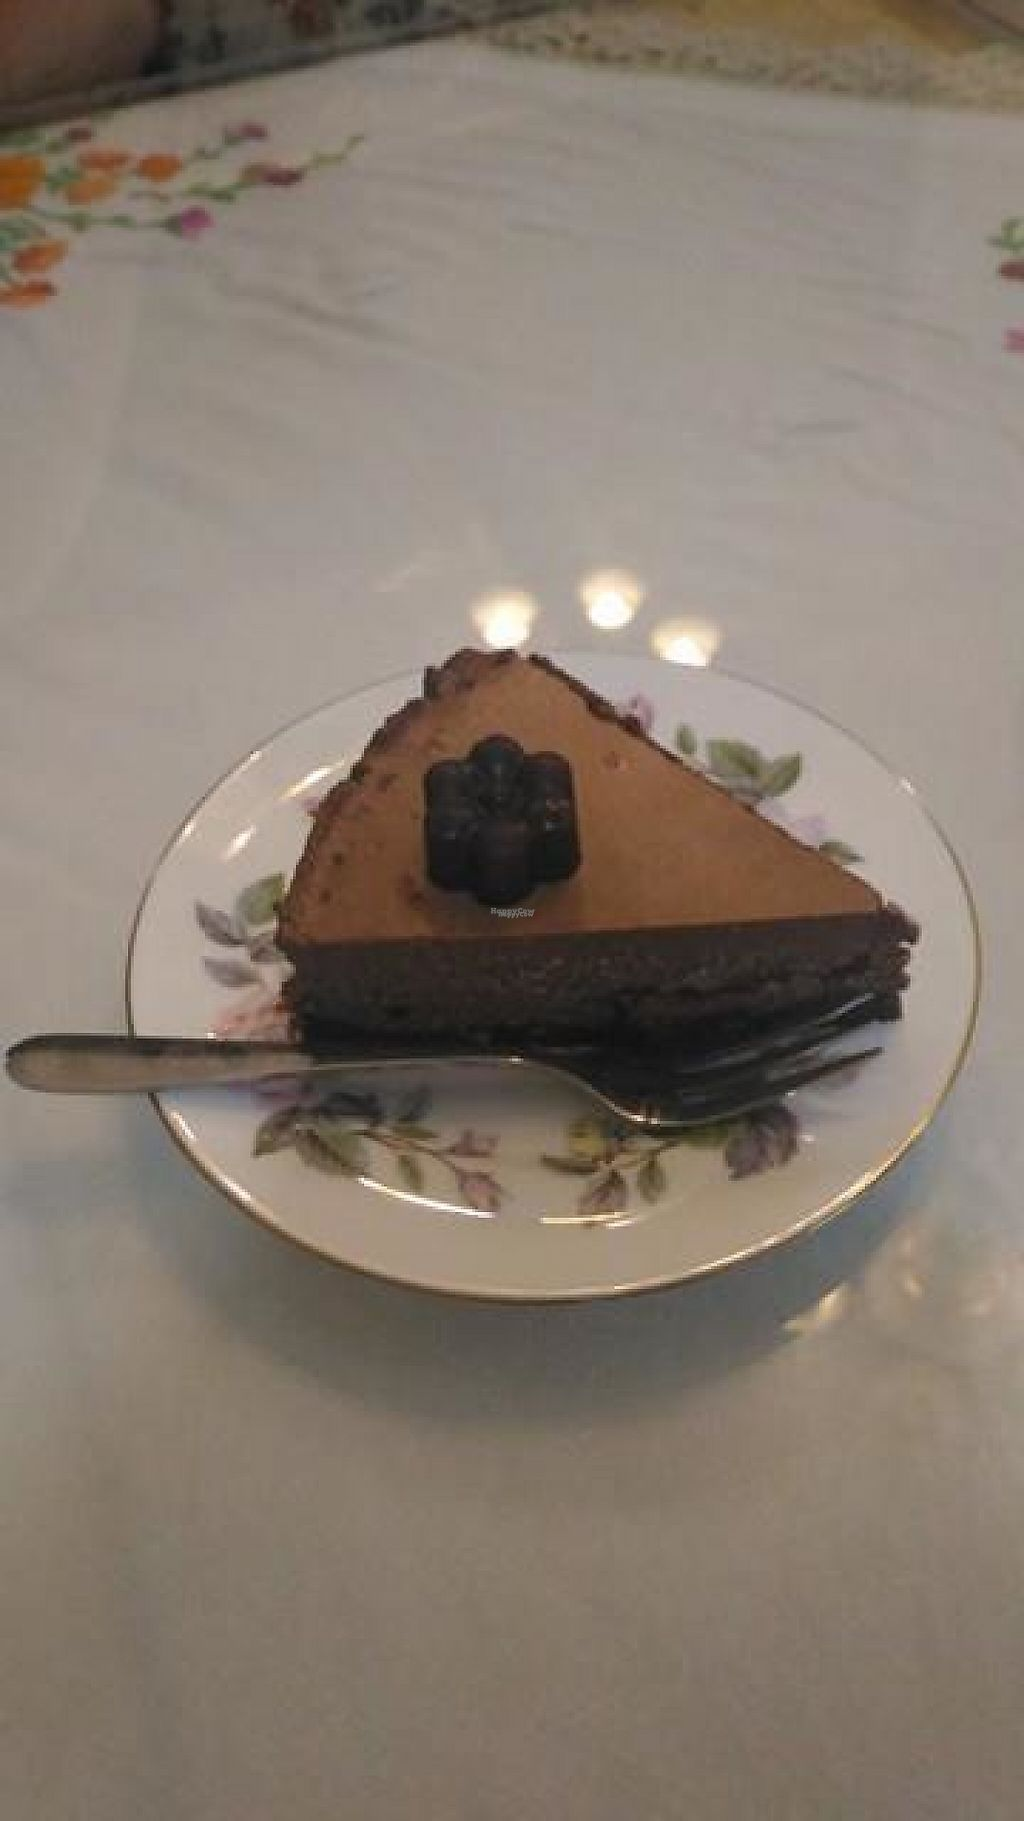 "Photo of The London Tearoom  by <a href=""/members/profile/LilacHippy"">LilacHippy</a> <br/>Raw Vegan Cheesecake <br/> April 21, 2017  - <a href='/contact/abuse/image/89816/250490'>Report</a>"